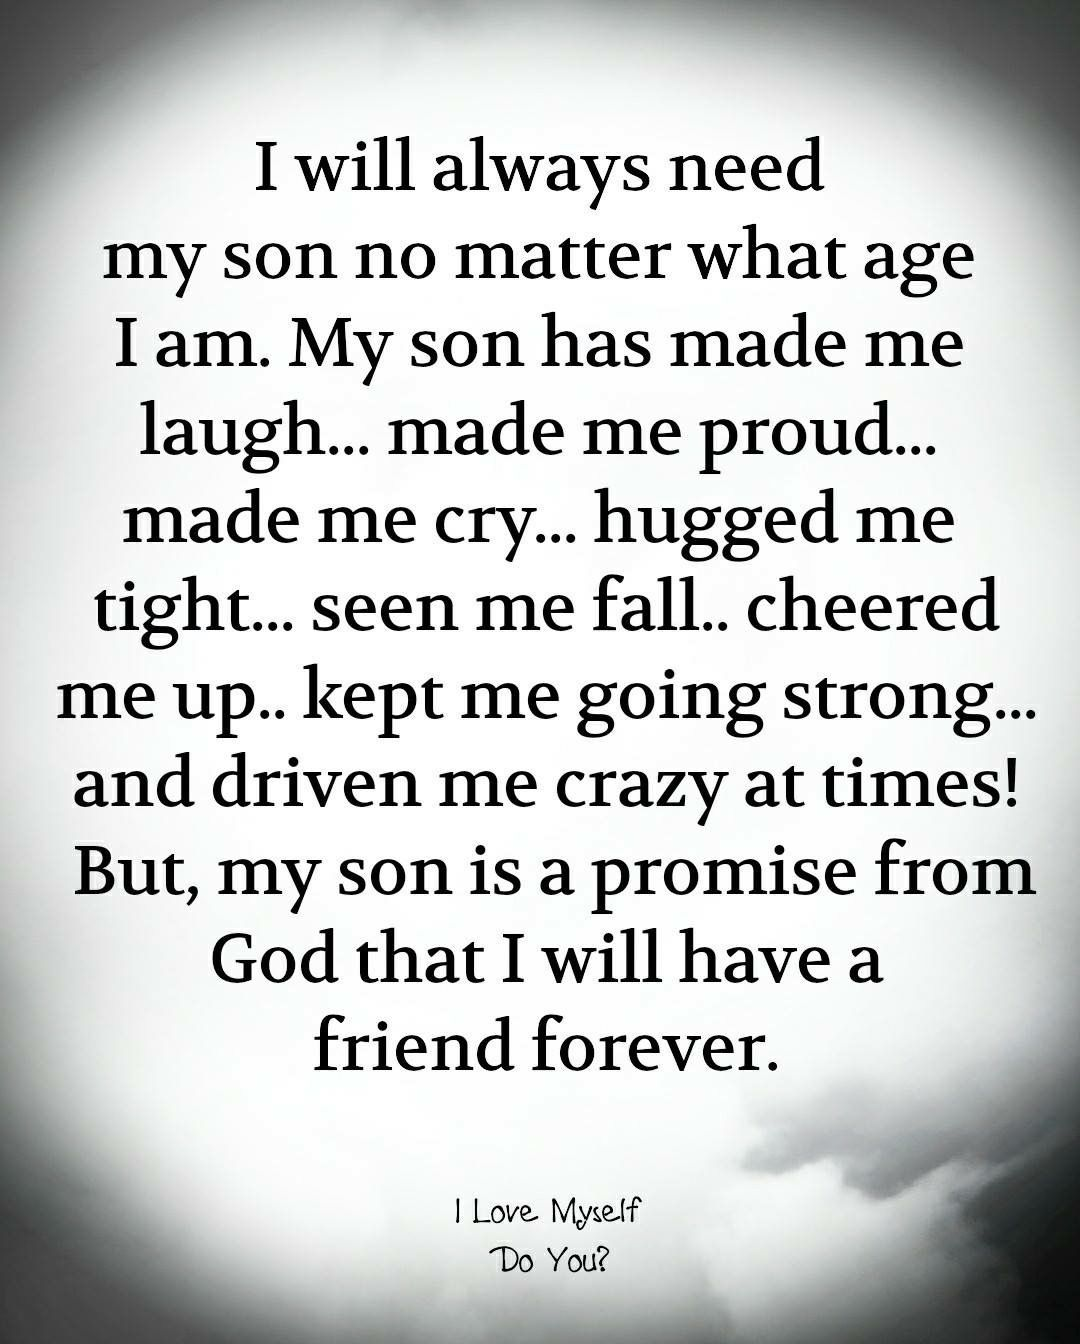 Pin By Alisa On Son I Ll Love You Always Mum Xx My Children Quotes Son Quotes From Mom Mother Son Quotes